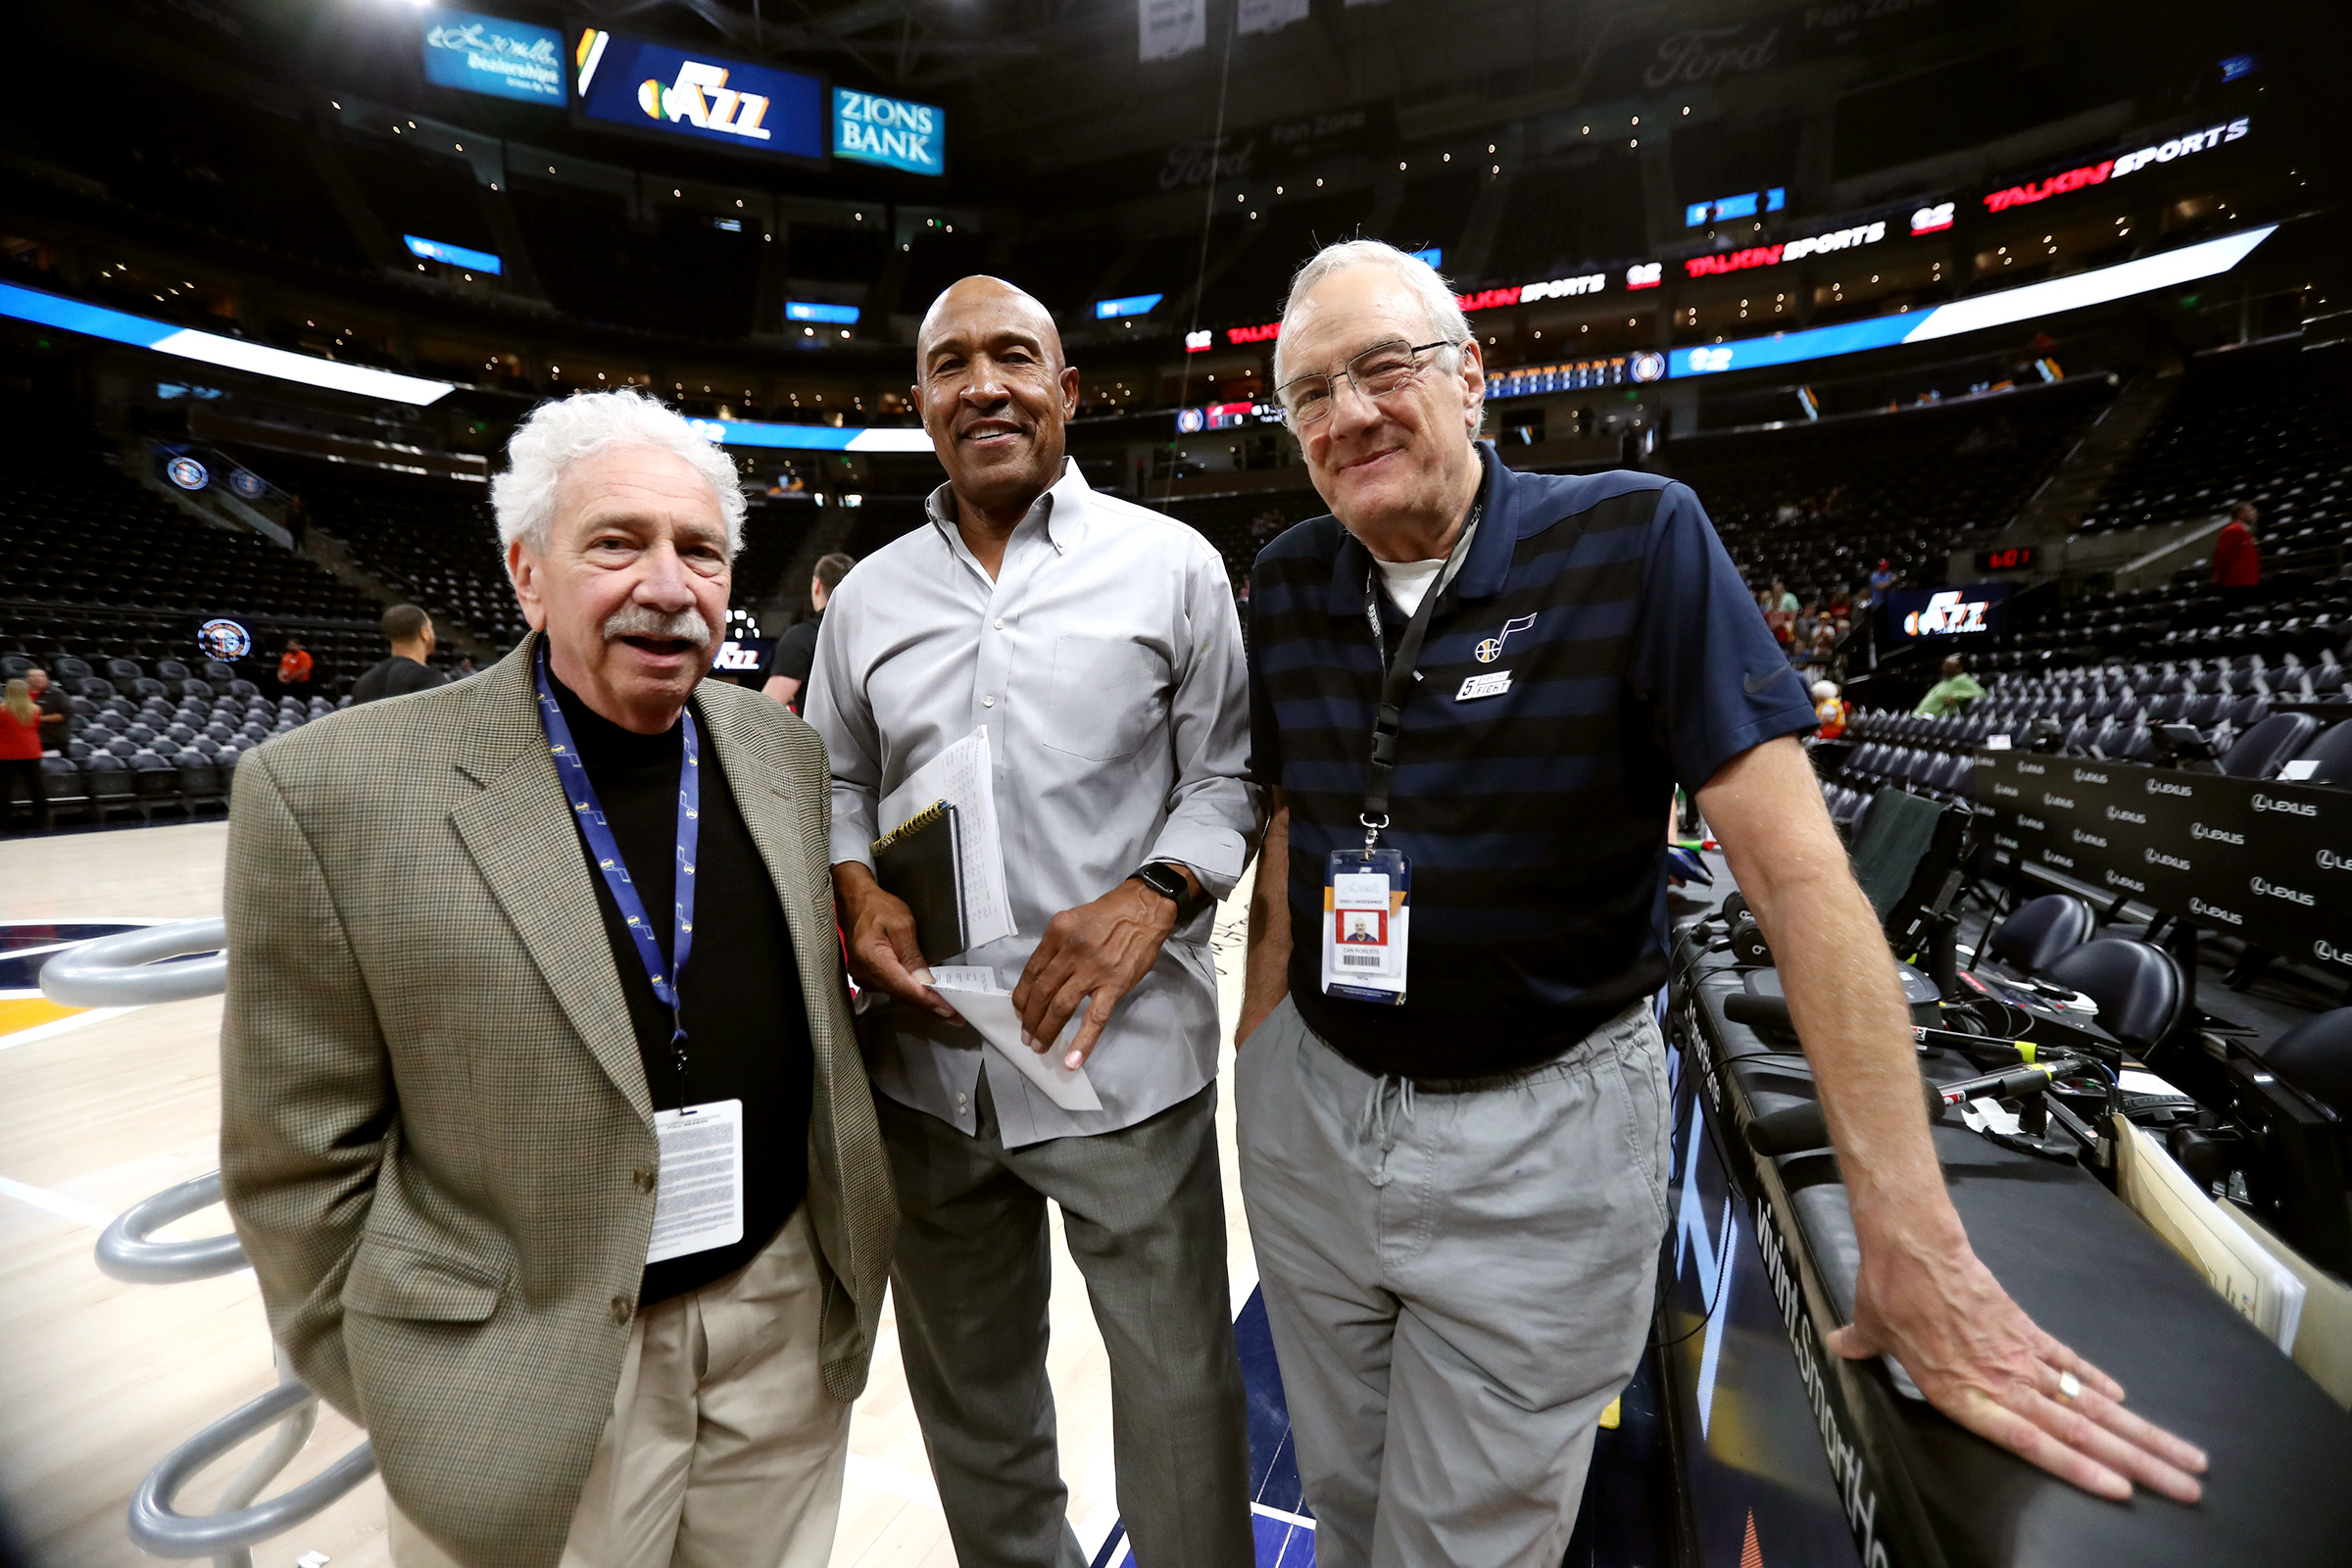 Dave Fredman, Ron Boone and Dan Roberts pose at Vivint Smart Home Arena before a Utah Jazz preseason game in Salt Lake City on Wednesday, Oct. 16, 2019.The three date back to the first Jazz season in 1979-80.